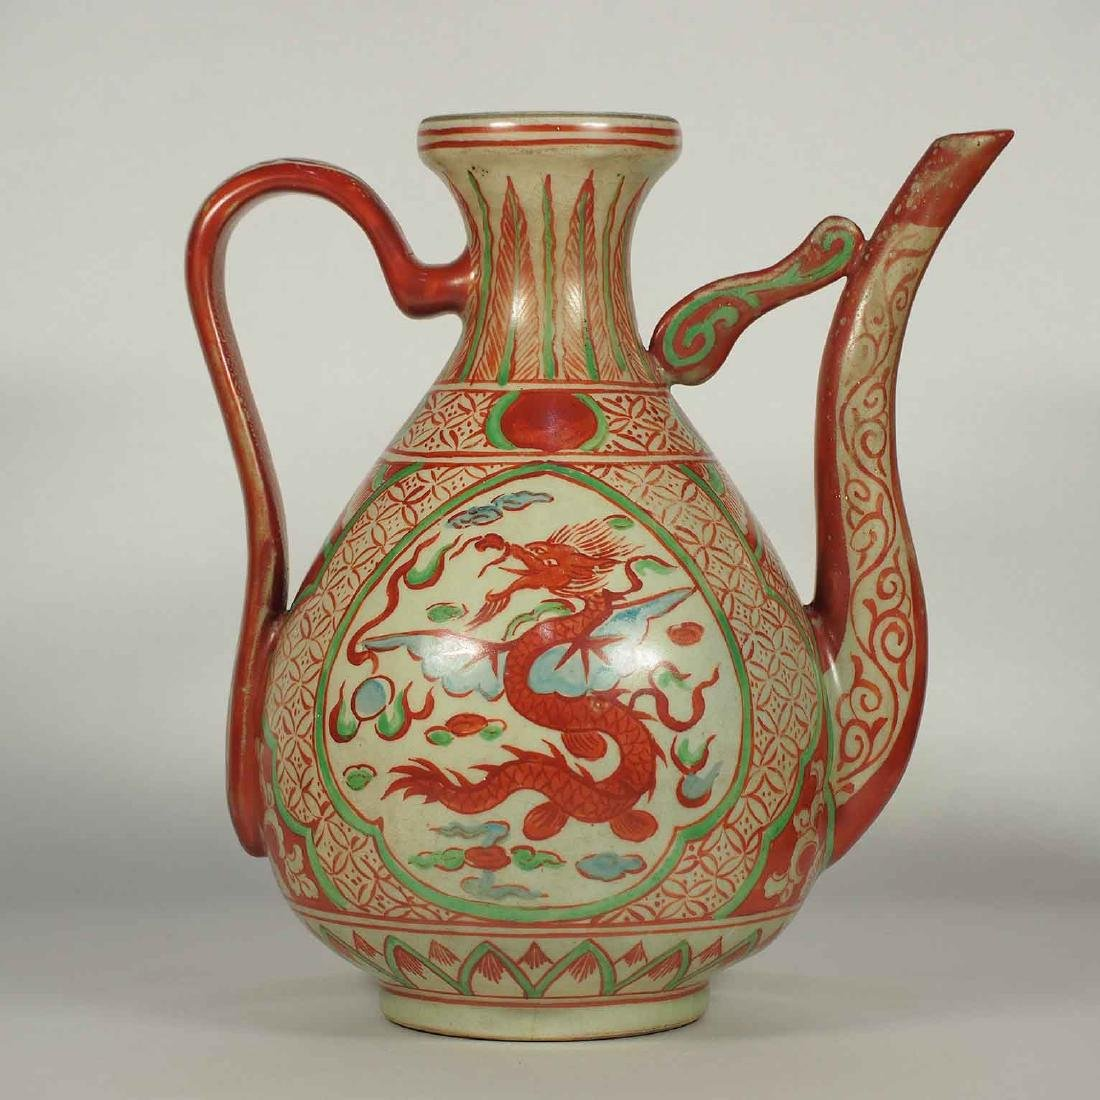 Ewer with Winged Dragon Design, late Ming Dynasty